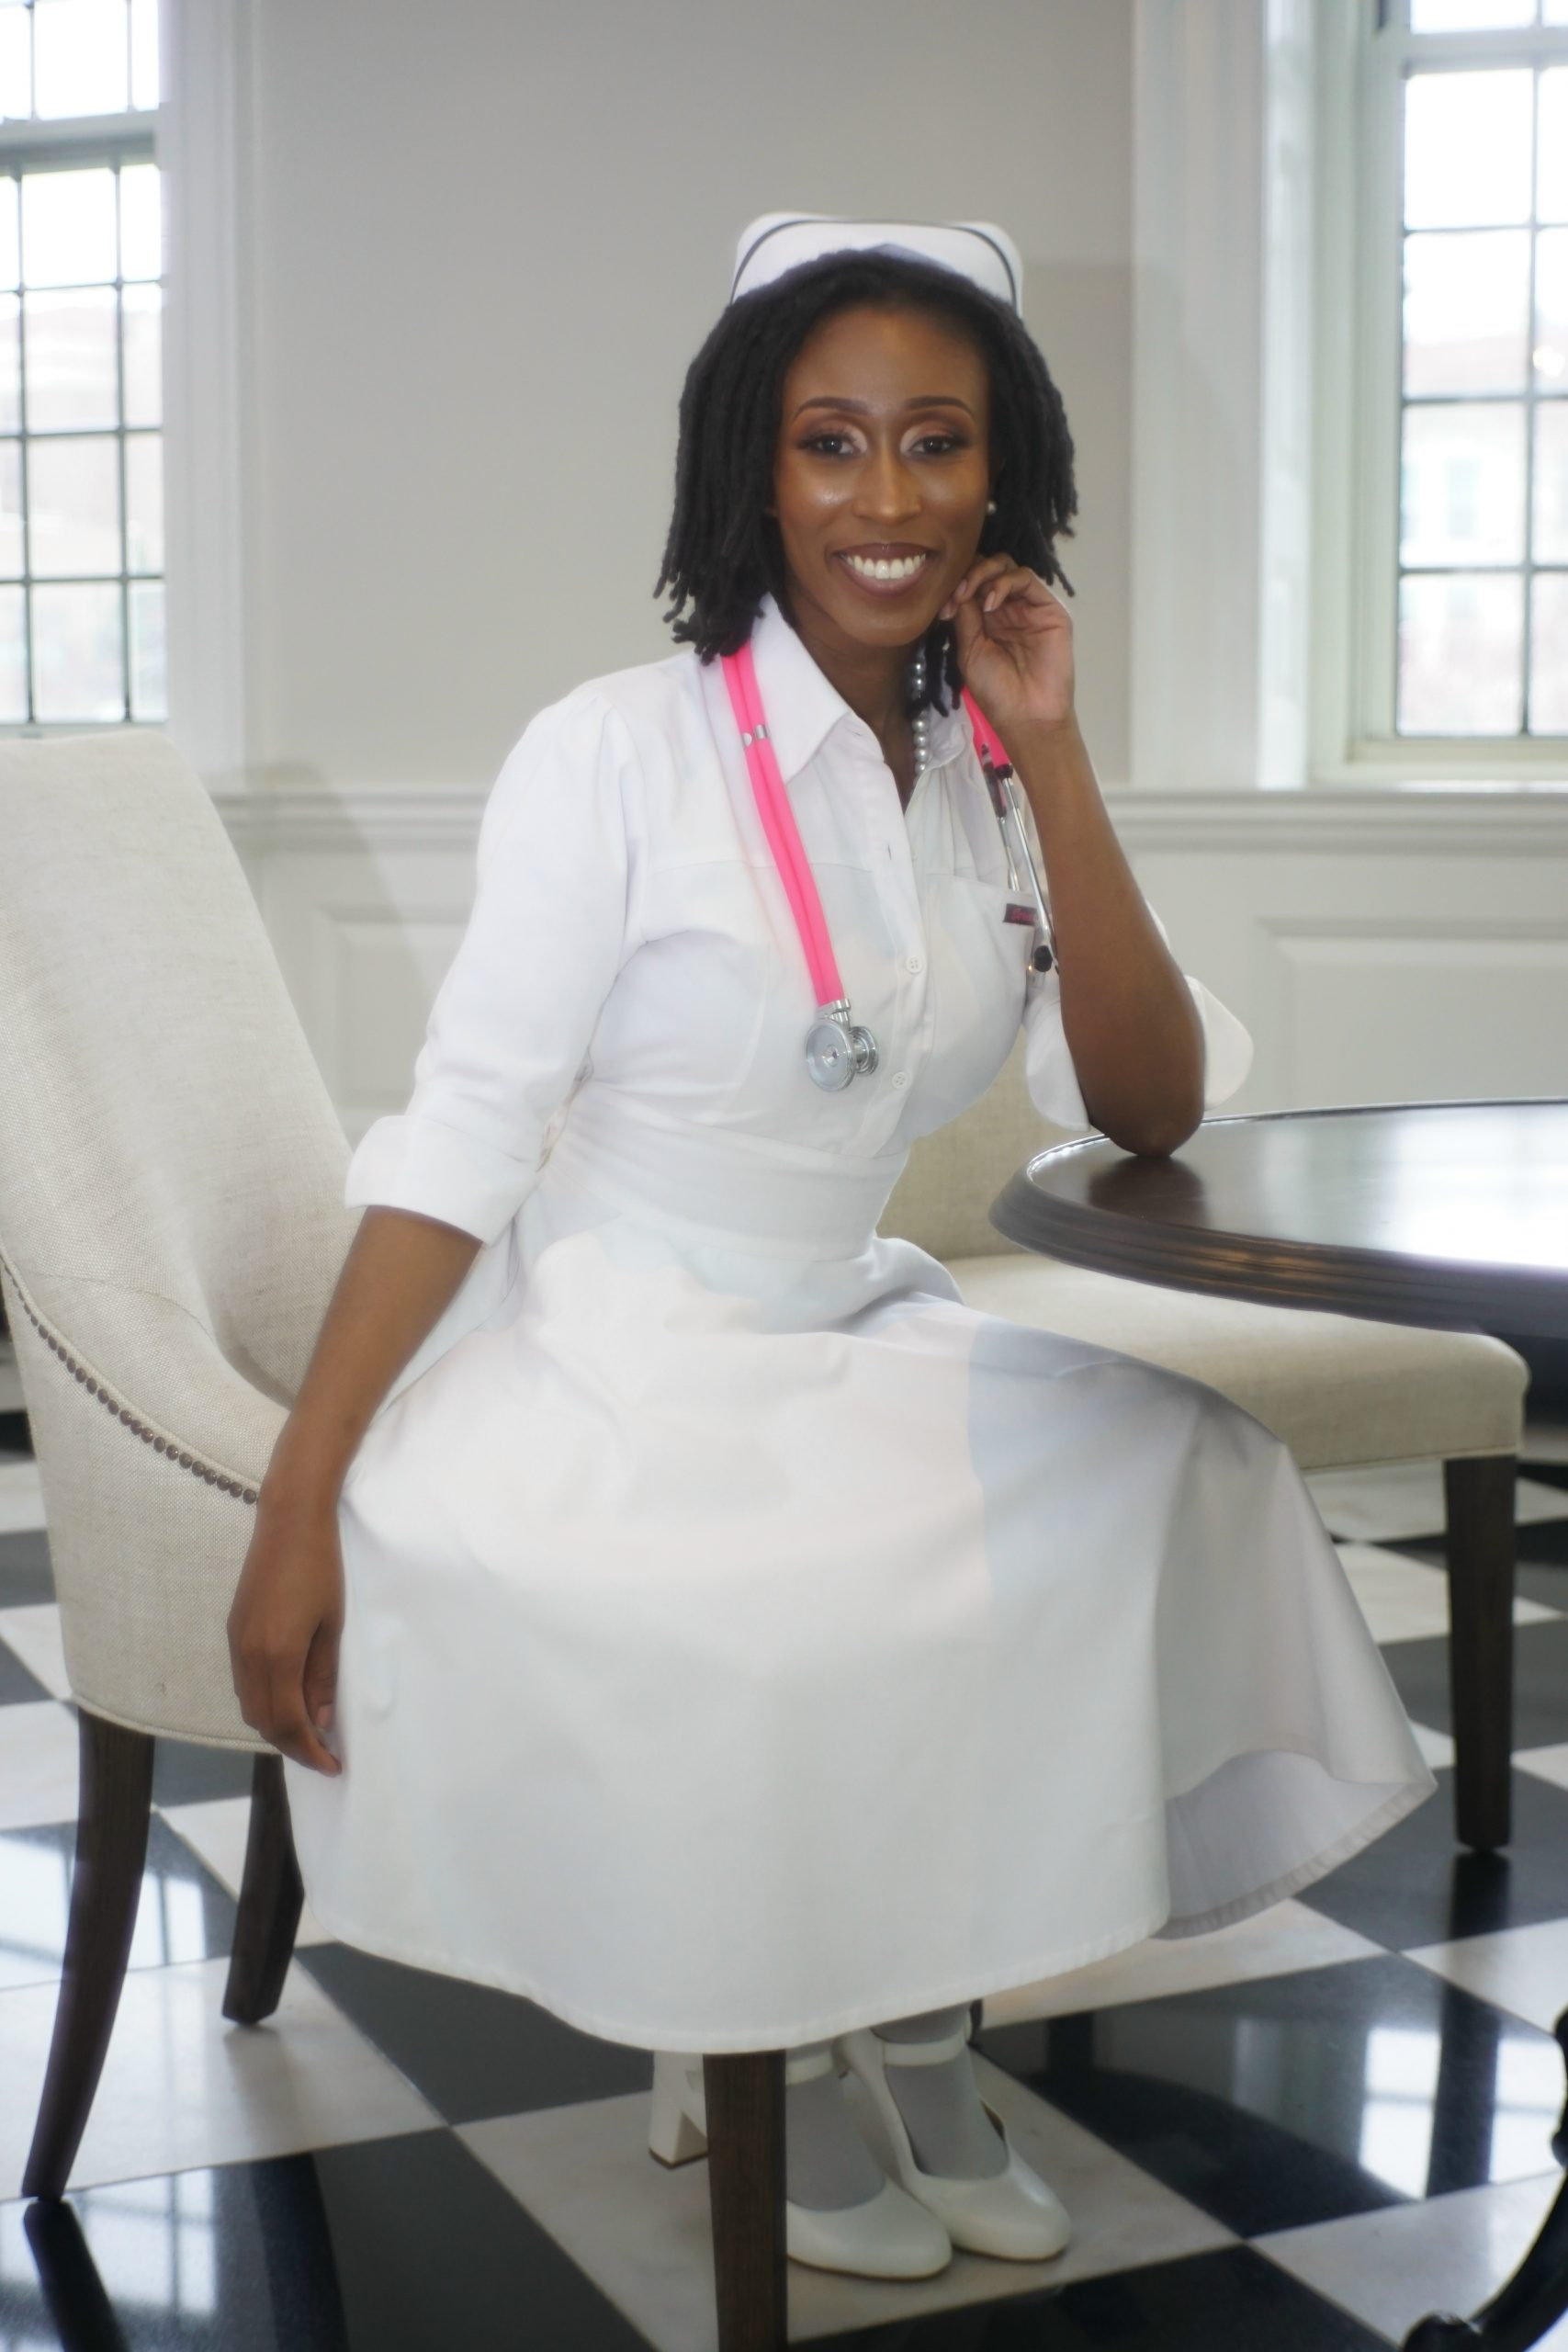 Scrub Dress, LLC Founder Abigail Israel, RN CEO